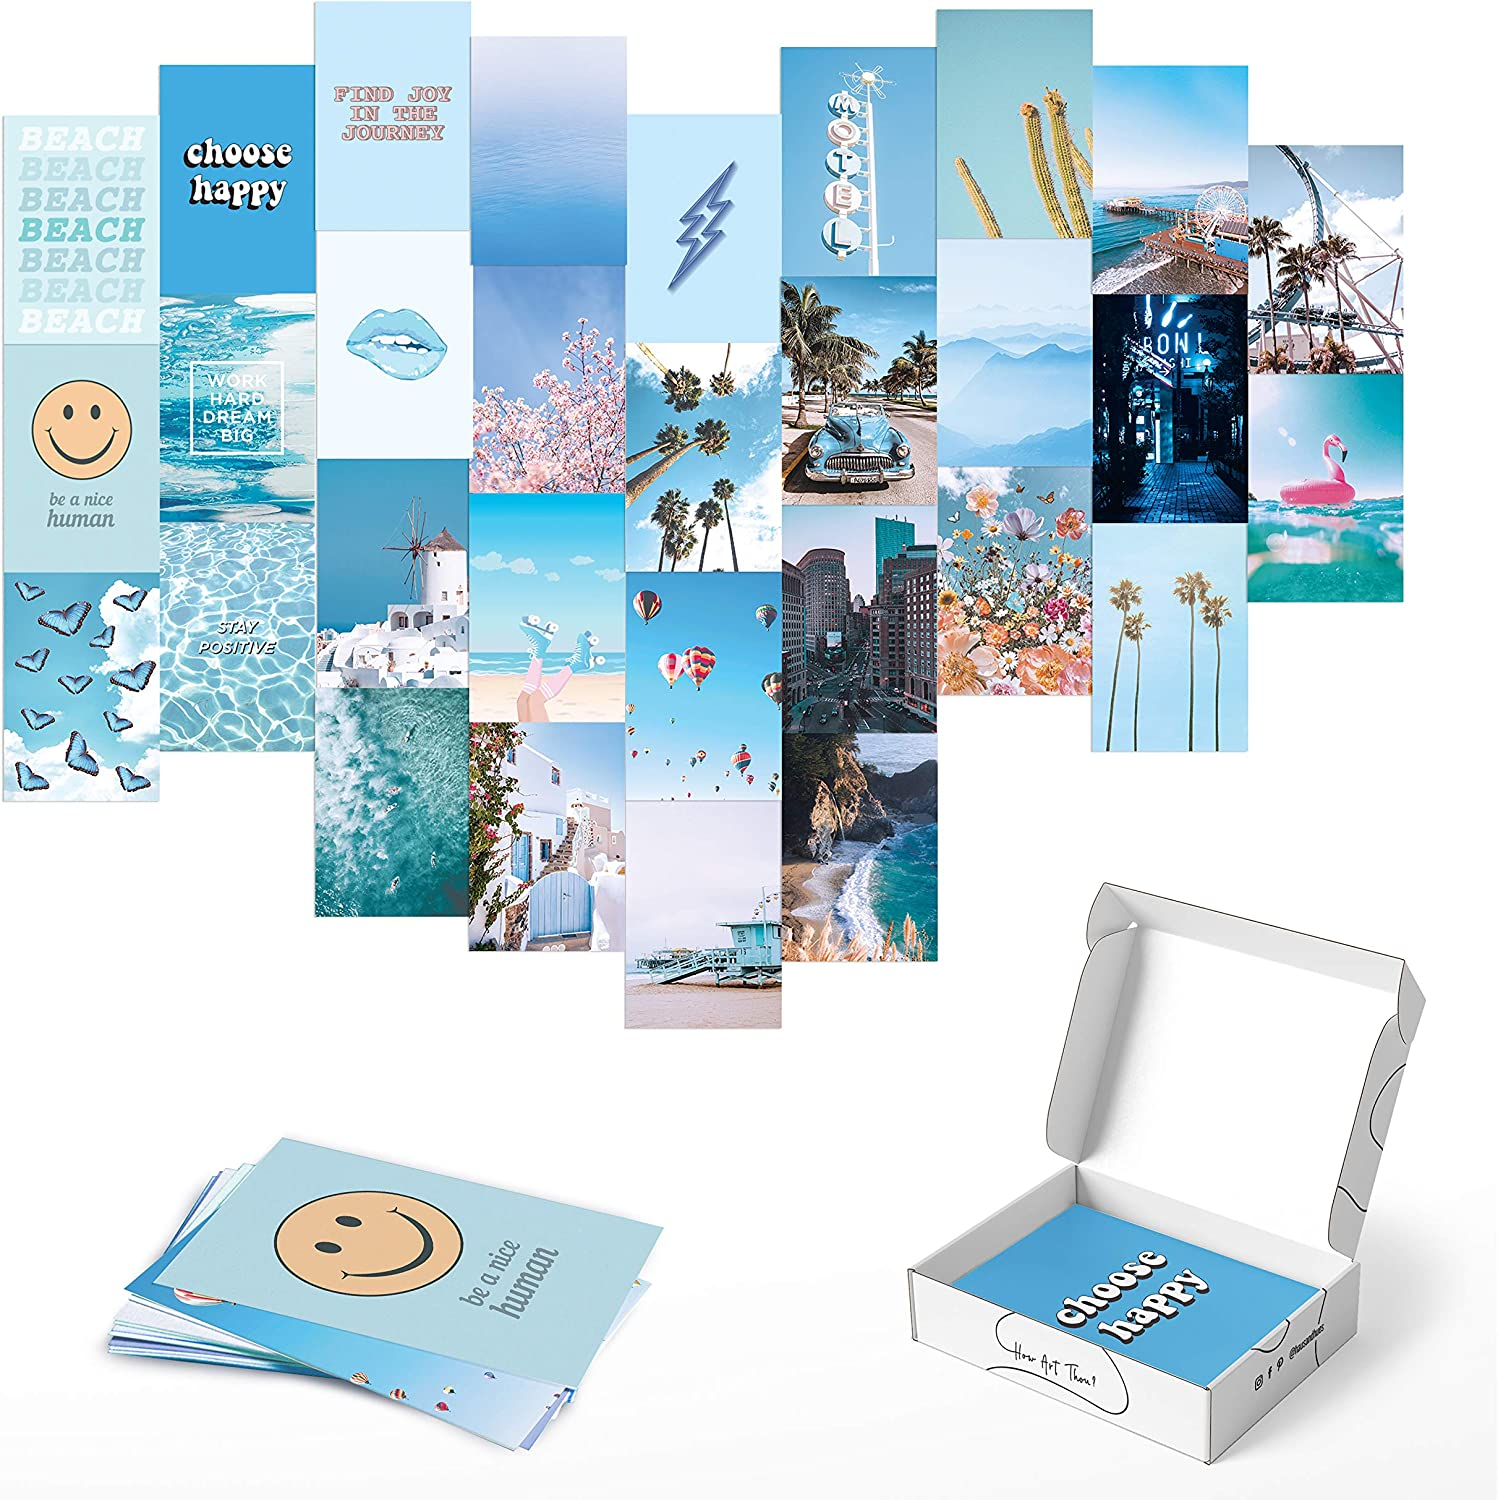 Photo Collage Kit for Wall Aesthetic Décor - by Haus and Hues | Beach Aesthetic Posters & Aesthetic Pictures for Wall Collage | Aesthetic Wall Collage Kit Prints (Blue Set of 30)